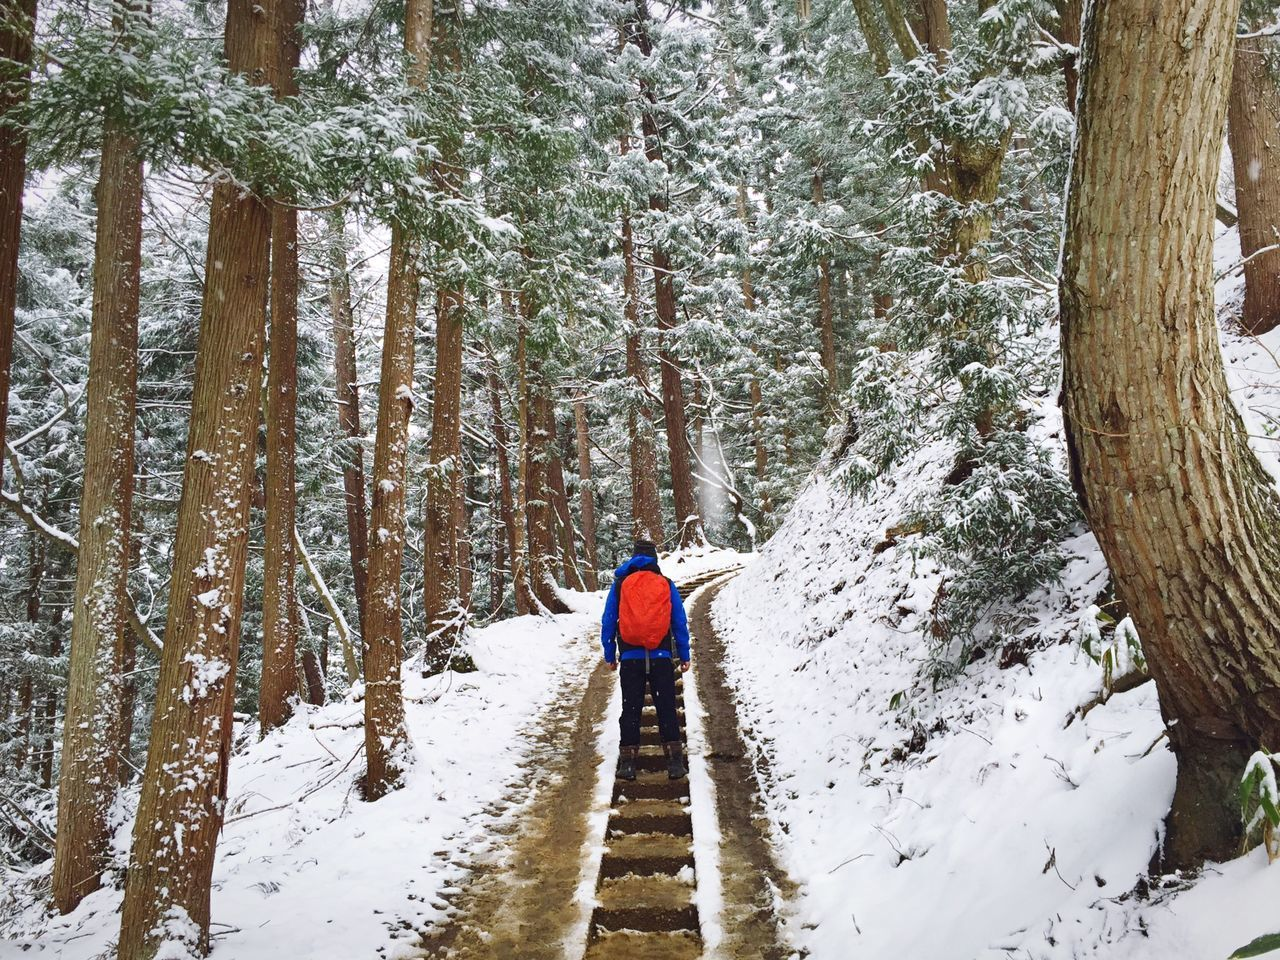 Rear view of person walking on staircase in snow covered forest